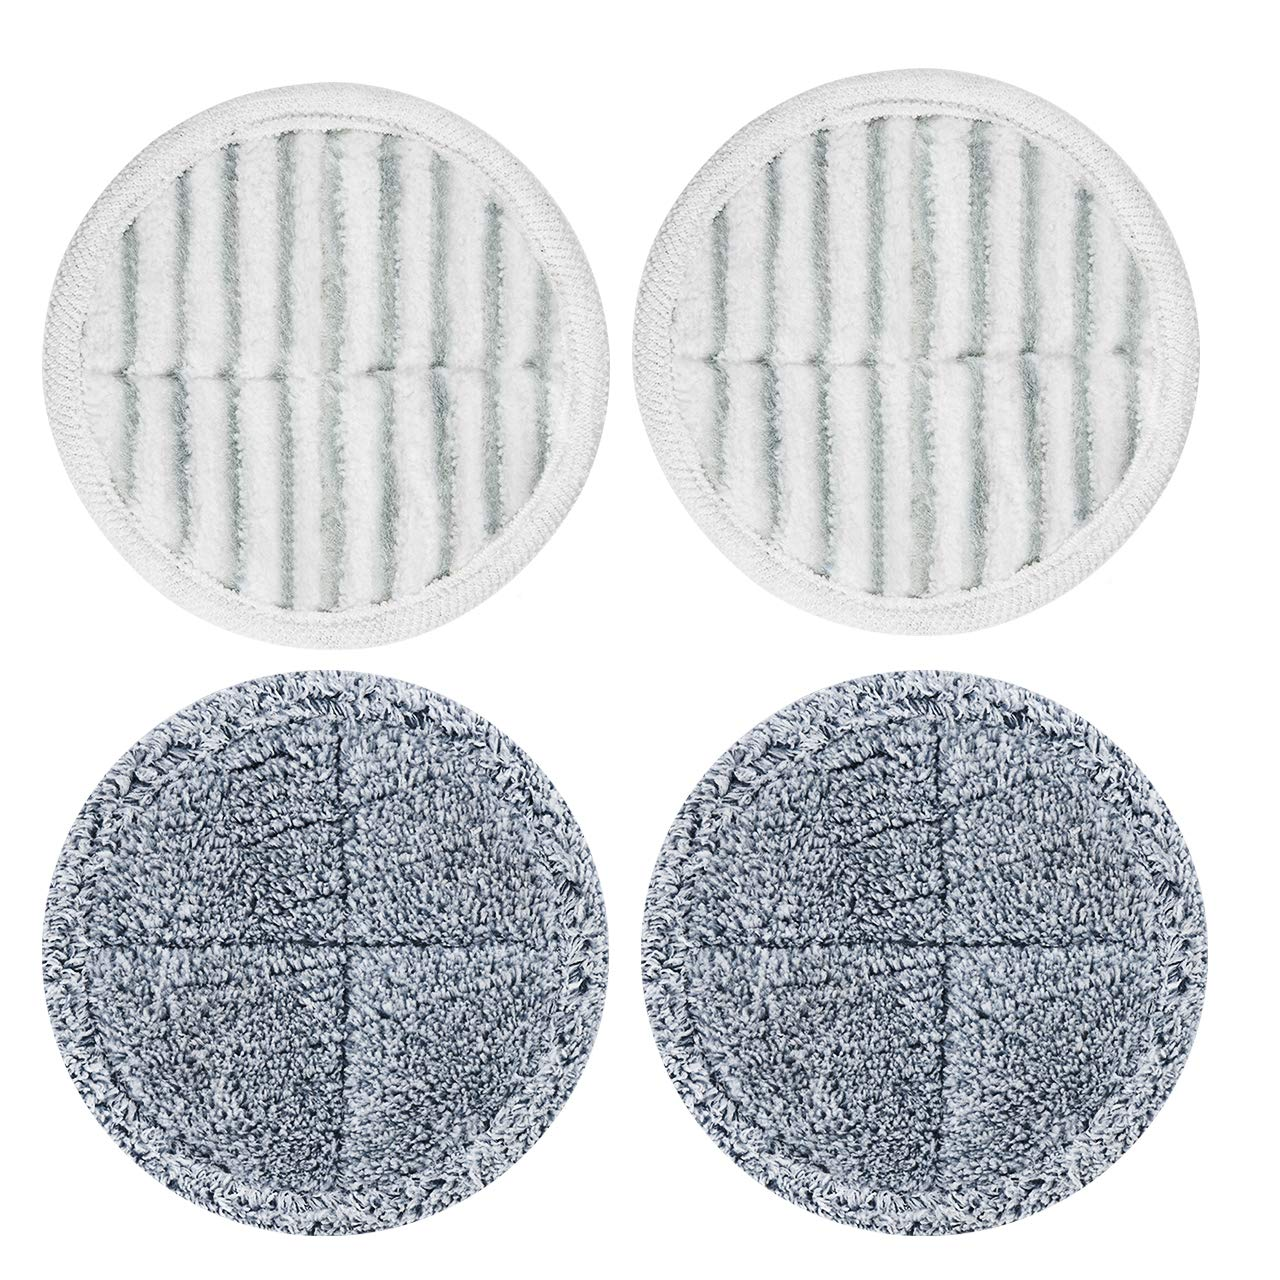 Homitt 4Pcs Replacement Mop Pads for Electric Spin Mop, Microfiber Washable Mop Pads for Cleaning Hardwood Floor and Tile, 2 Scrubby Pads and 2 Soft Pads by Homitt